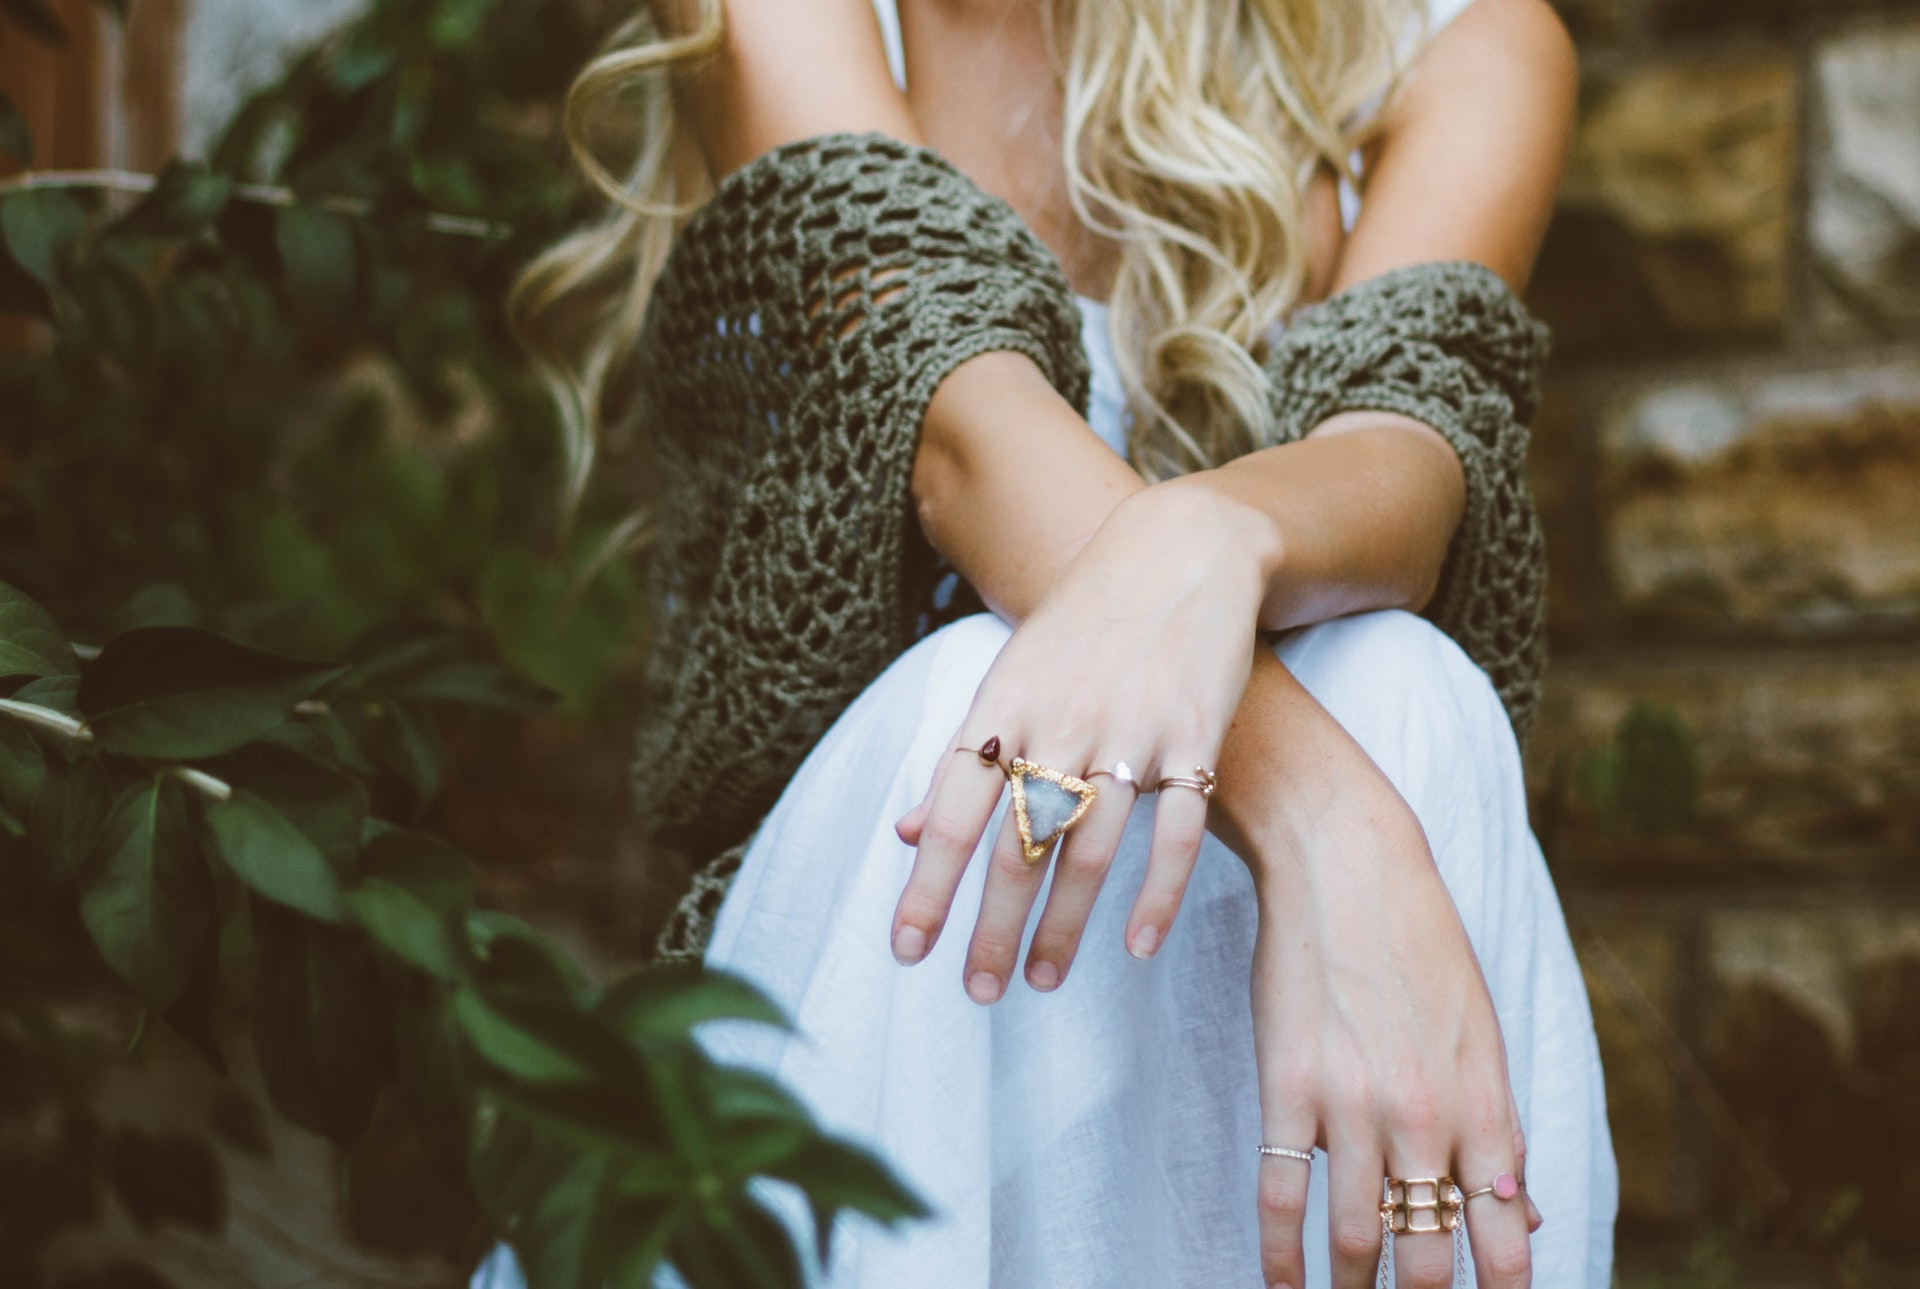 5 Reasons To Choose Custom-Made Jewelry